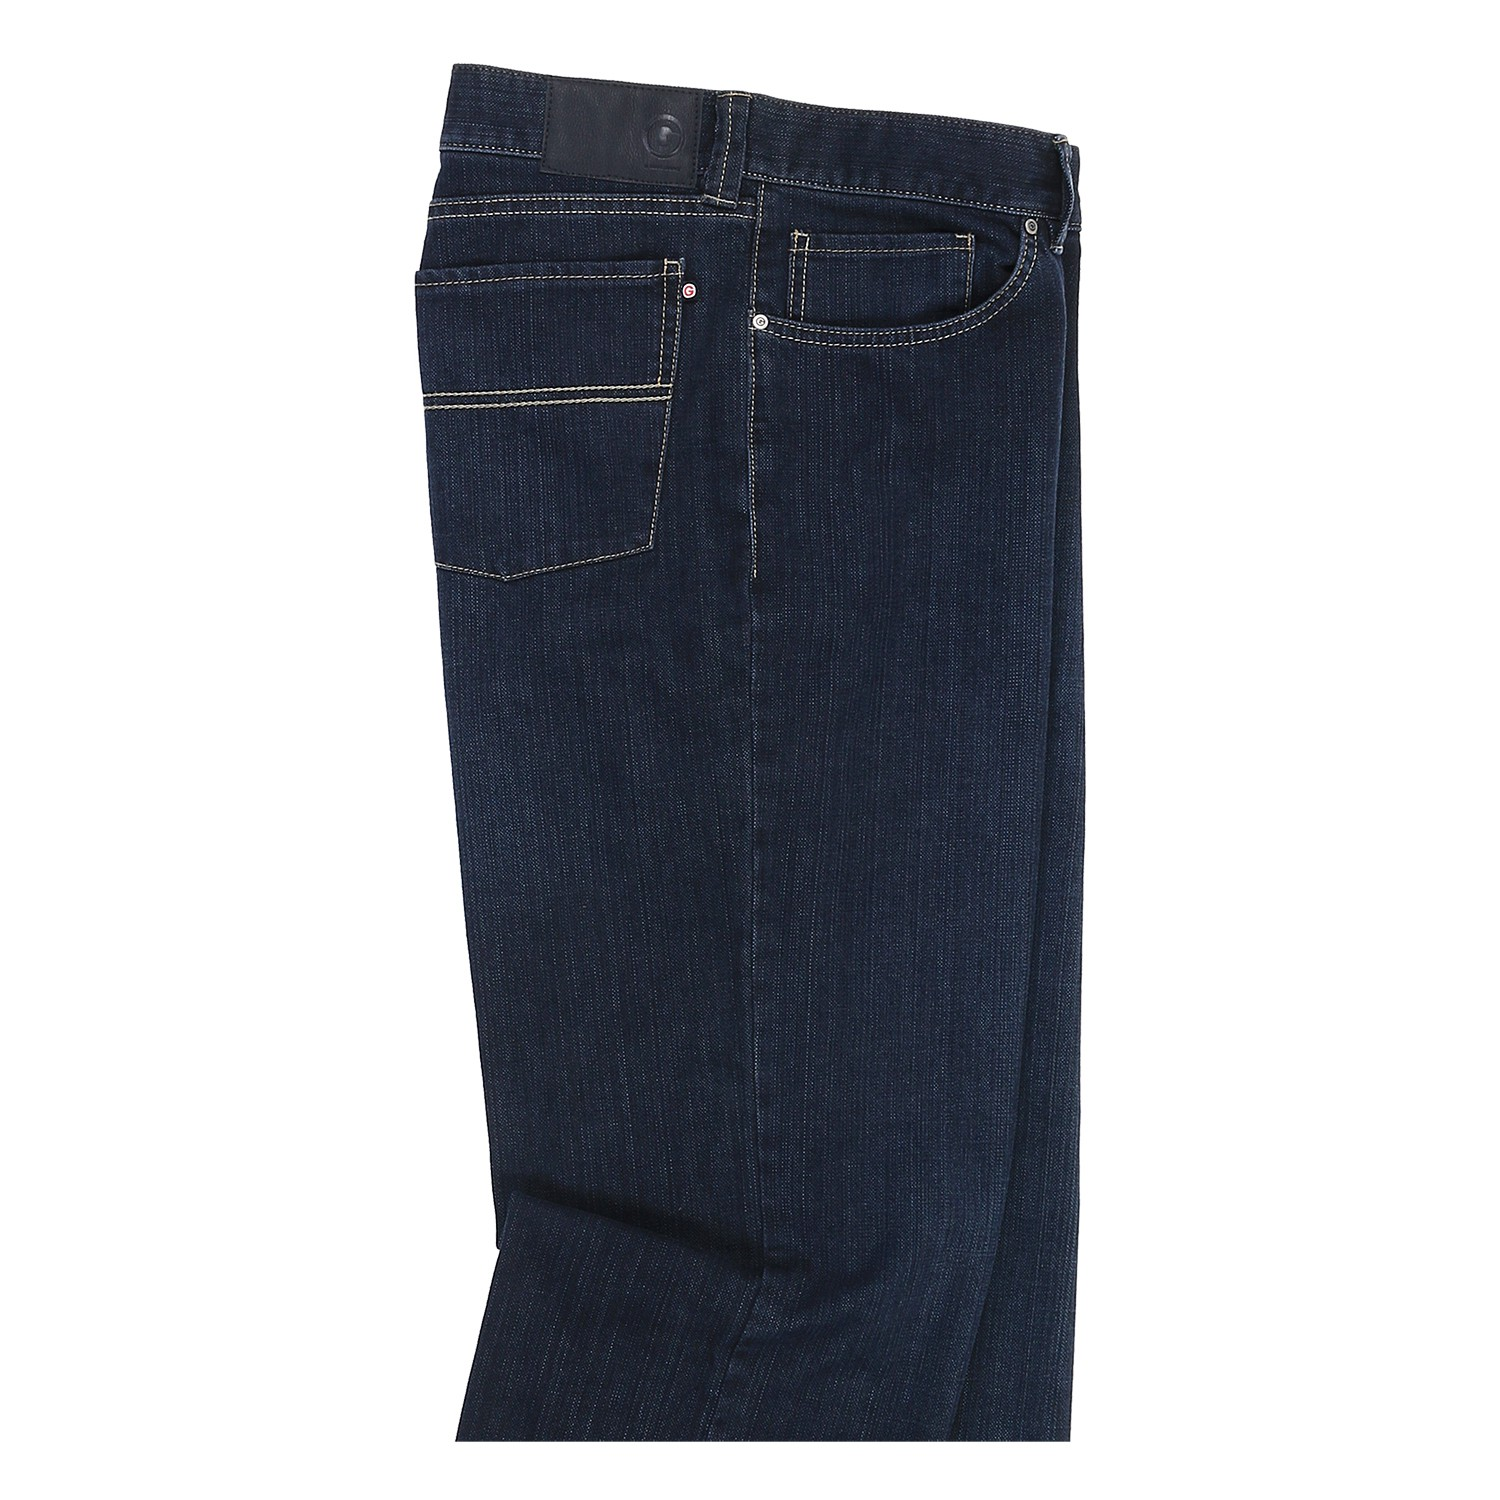 Detail Image to Jeans darkblue by Greyes in plus sizes